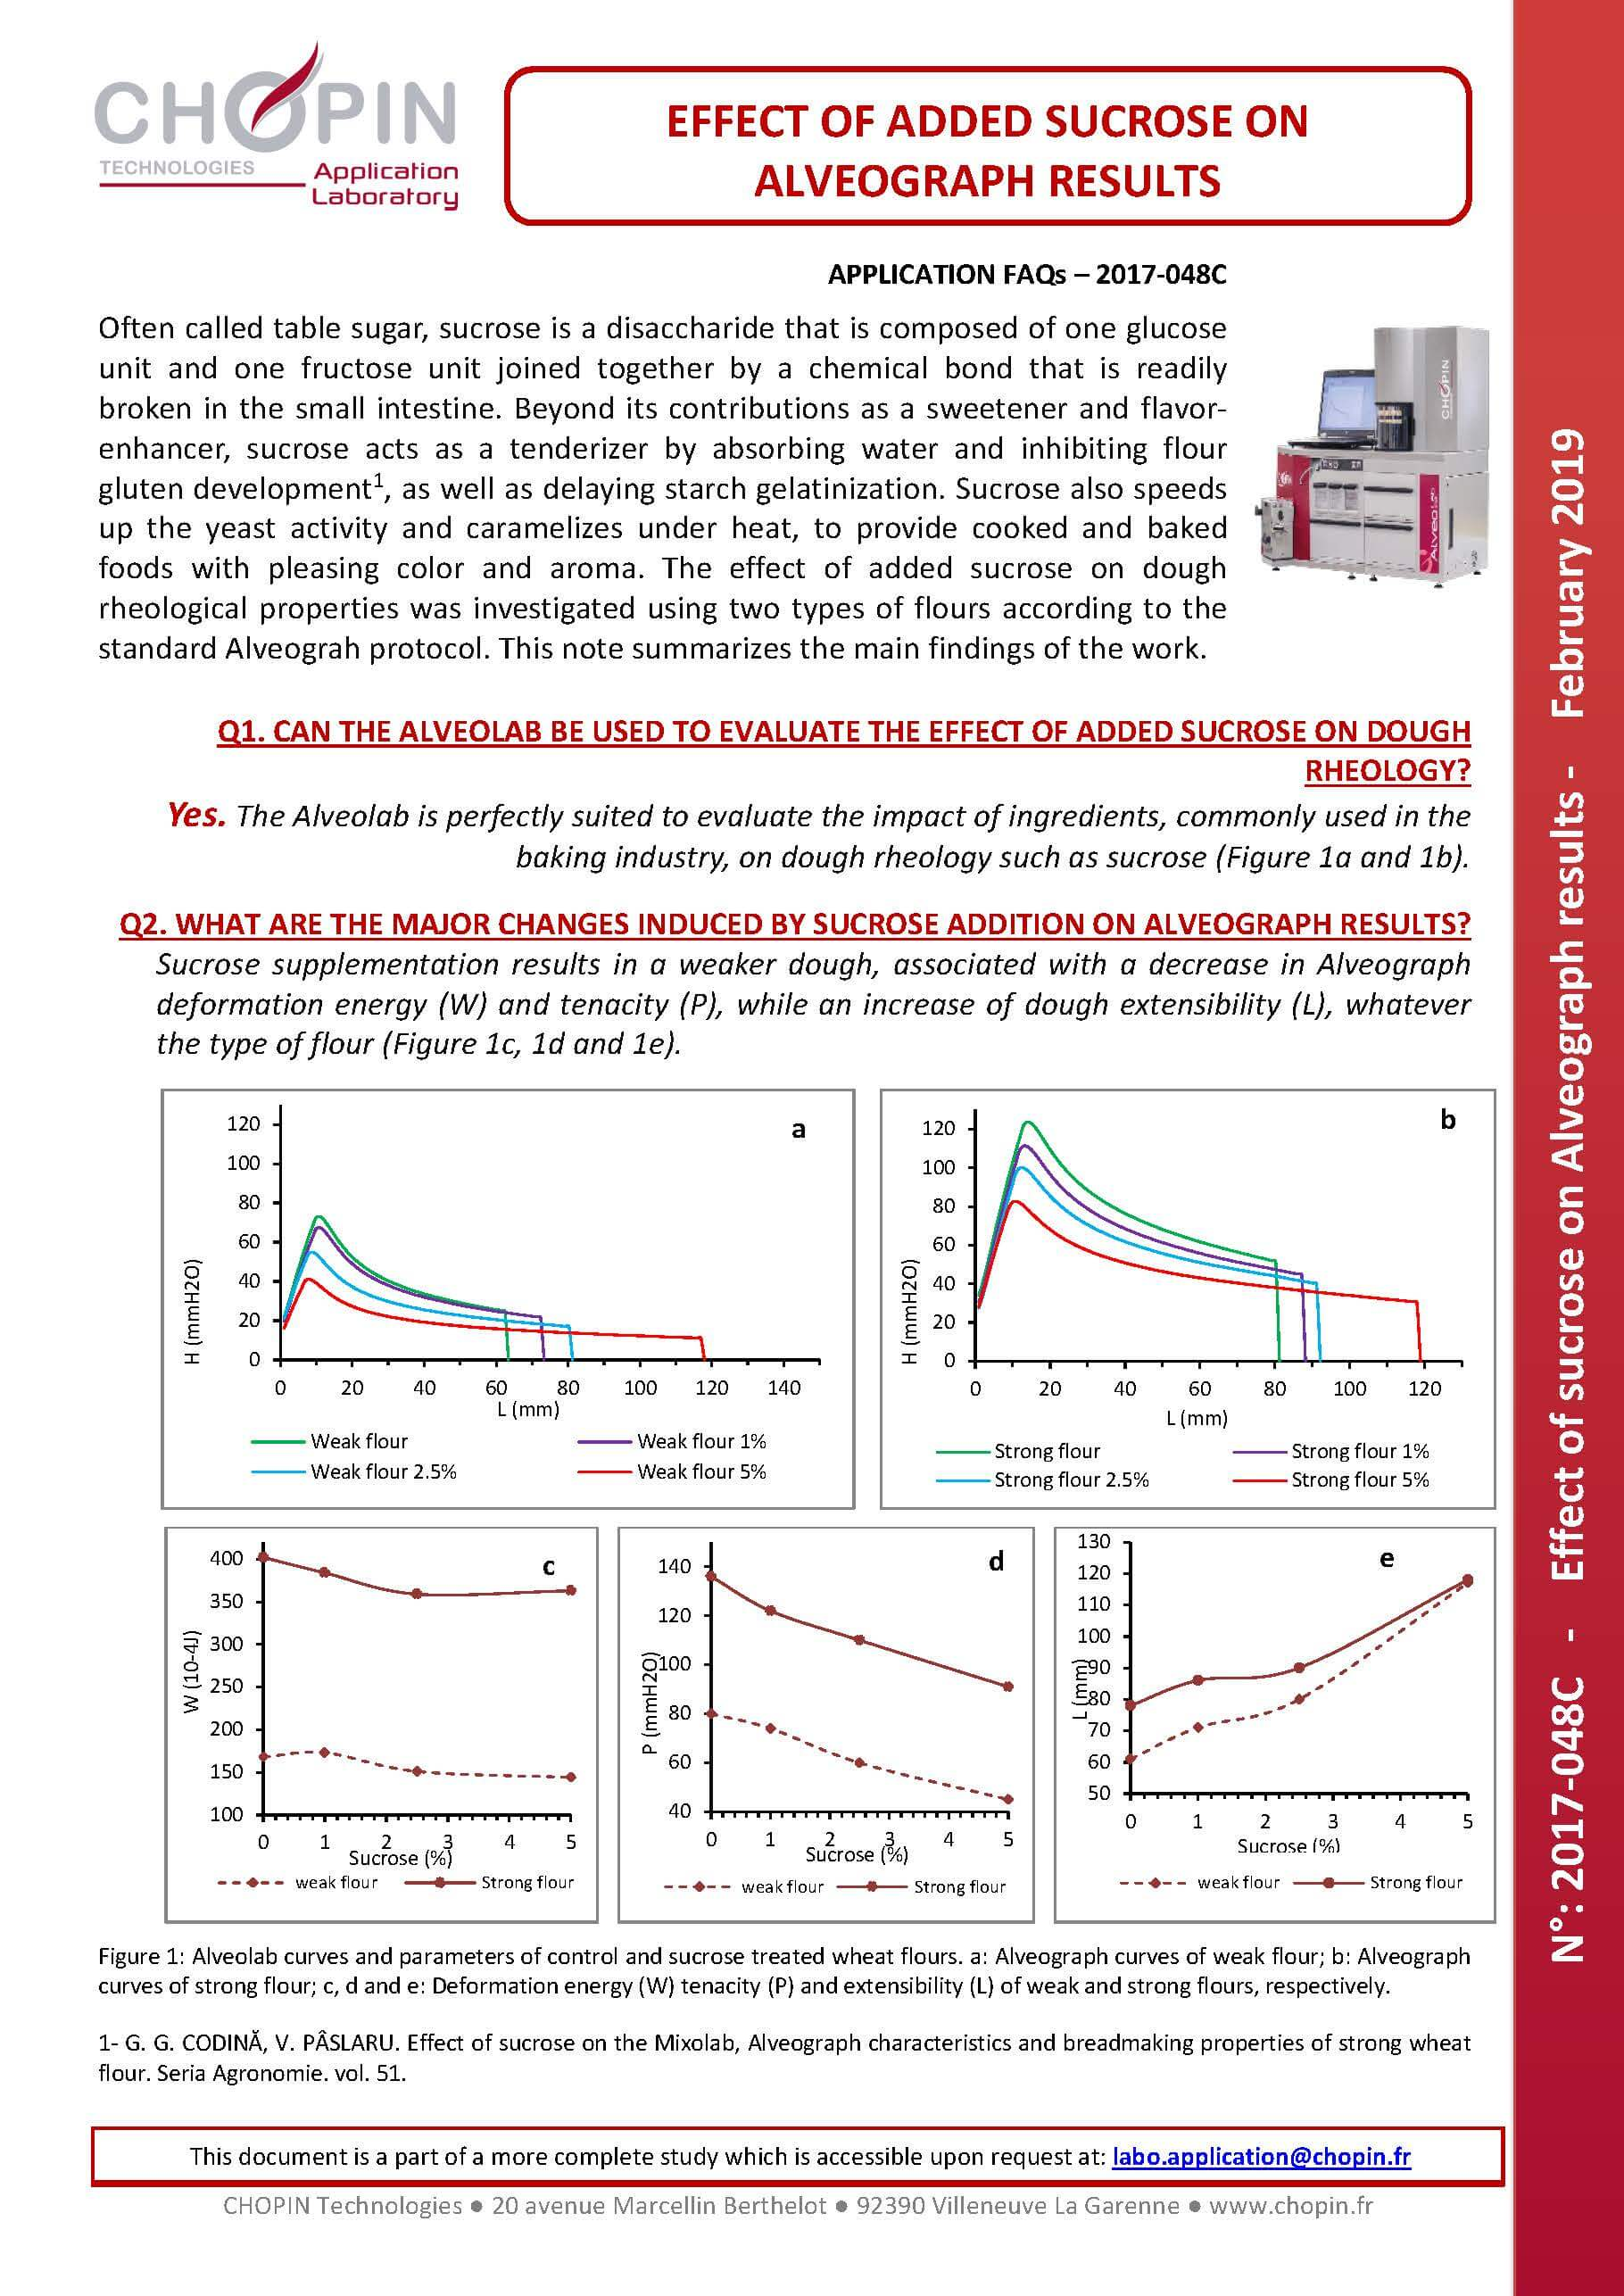 Effect of Added Sucrose on Alveograph Results